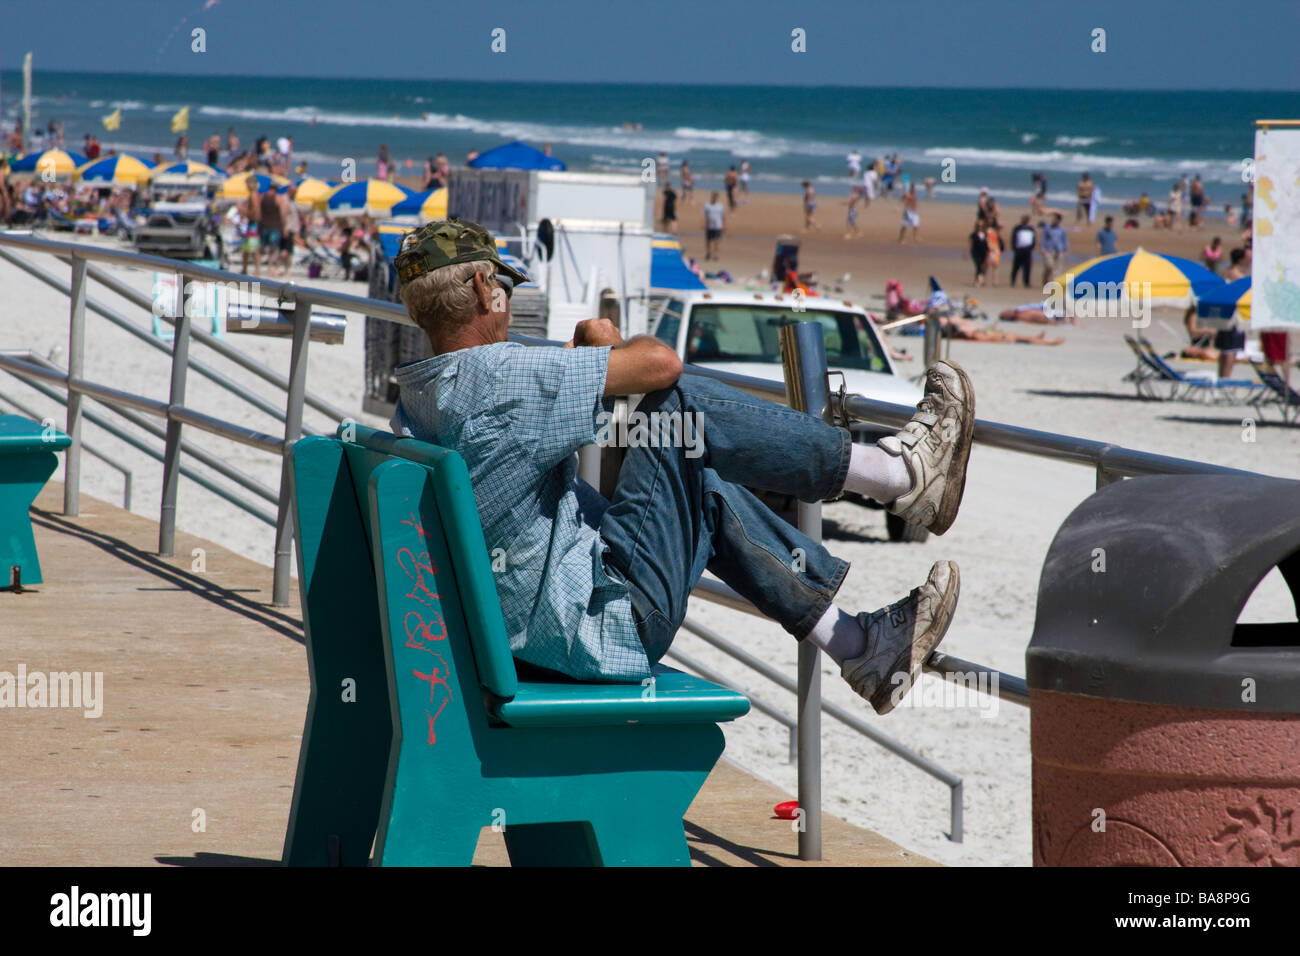 Transient homeless person sits on a beach at a tourist location wondering where his next meal will come from - Stock Image